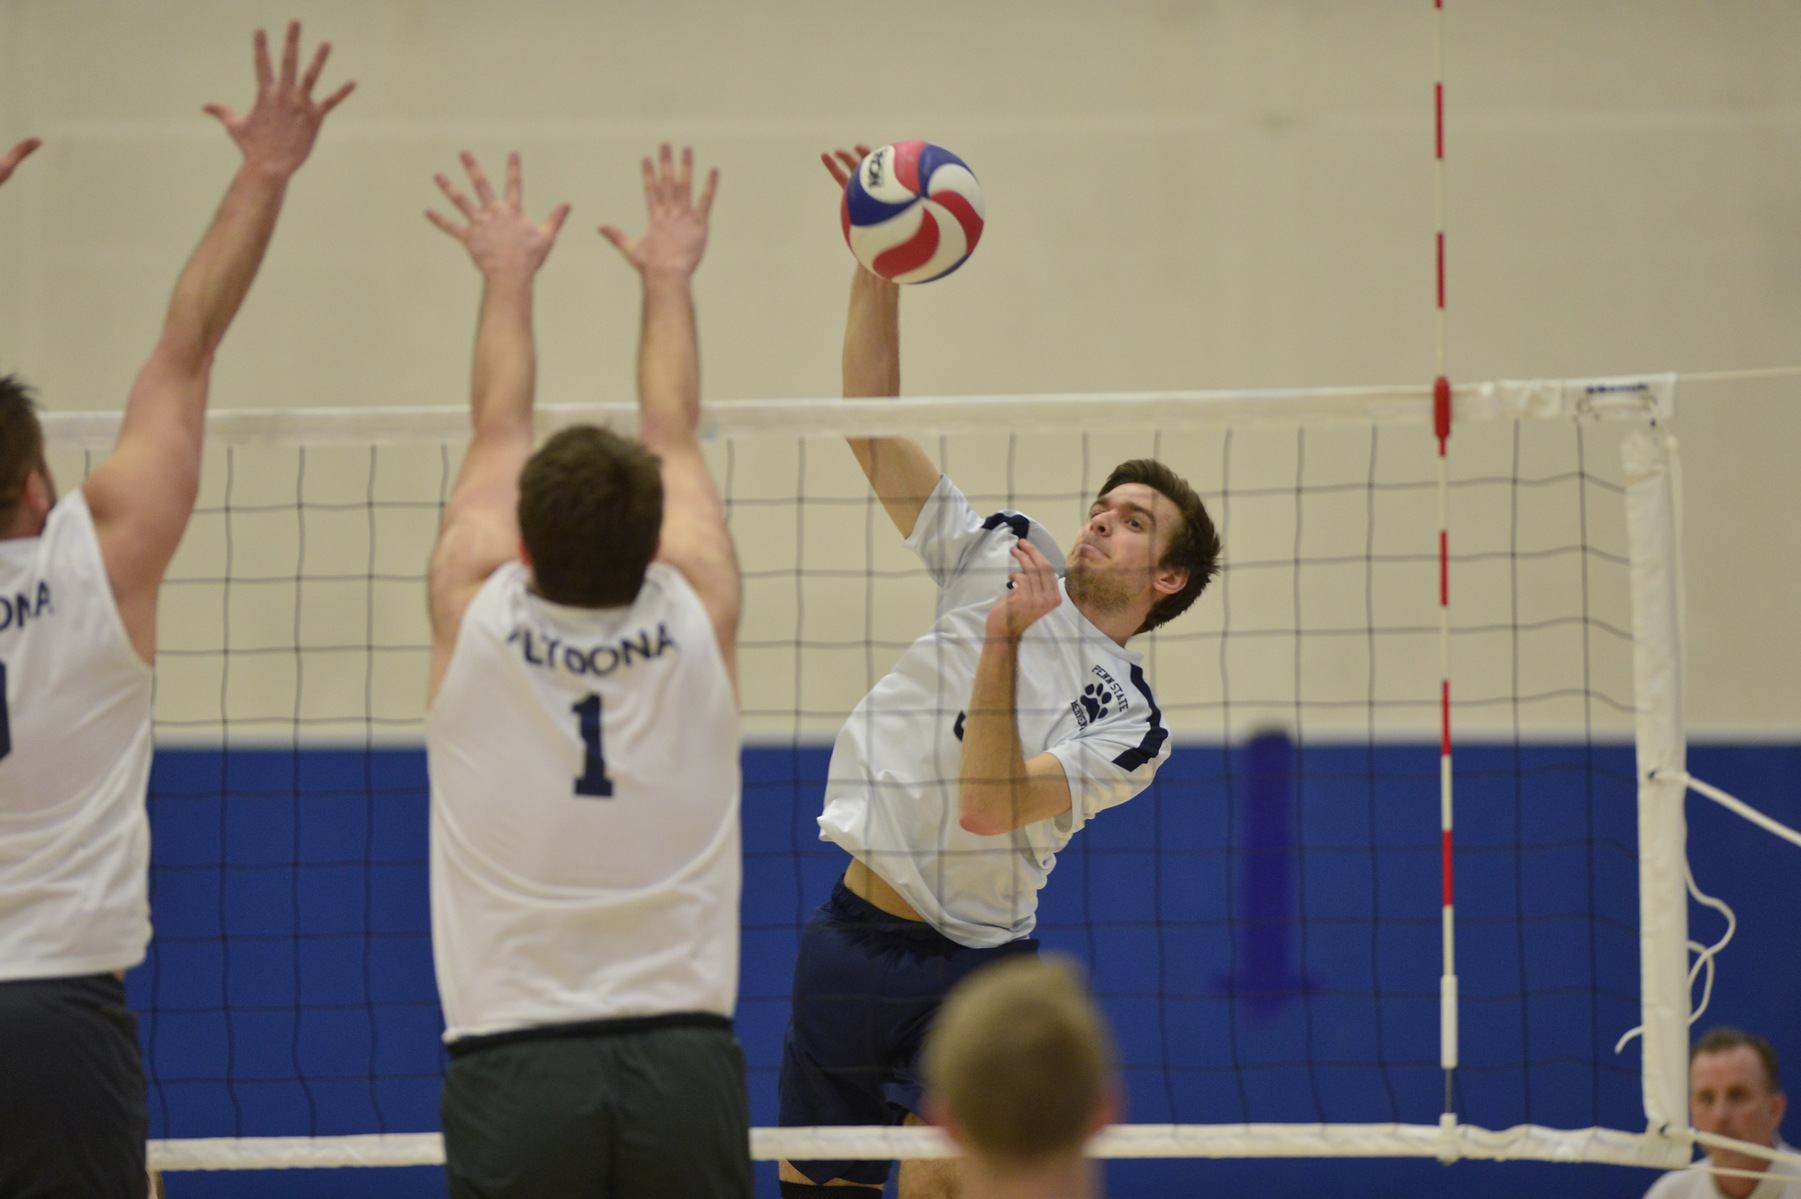 Altoona Edges Men's Volleyball